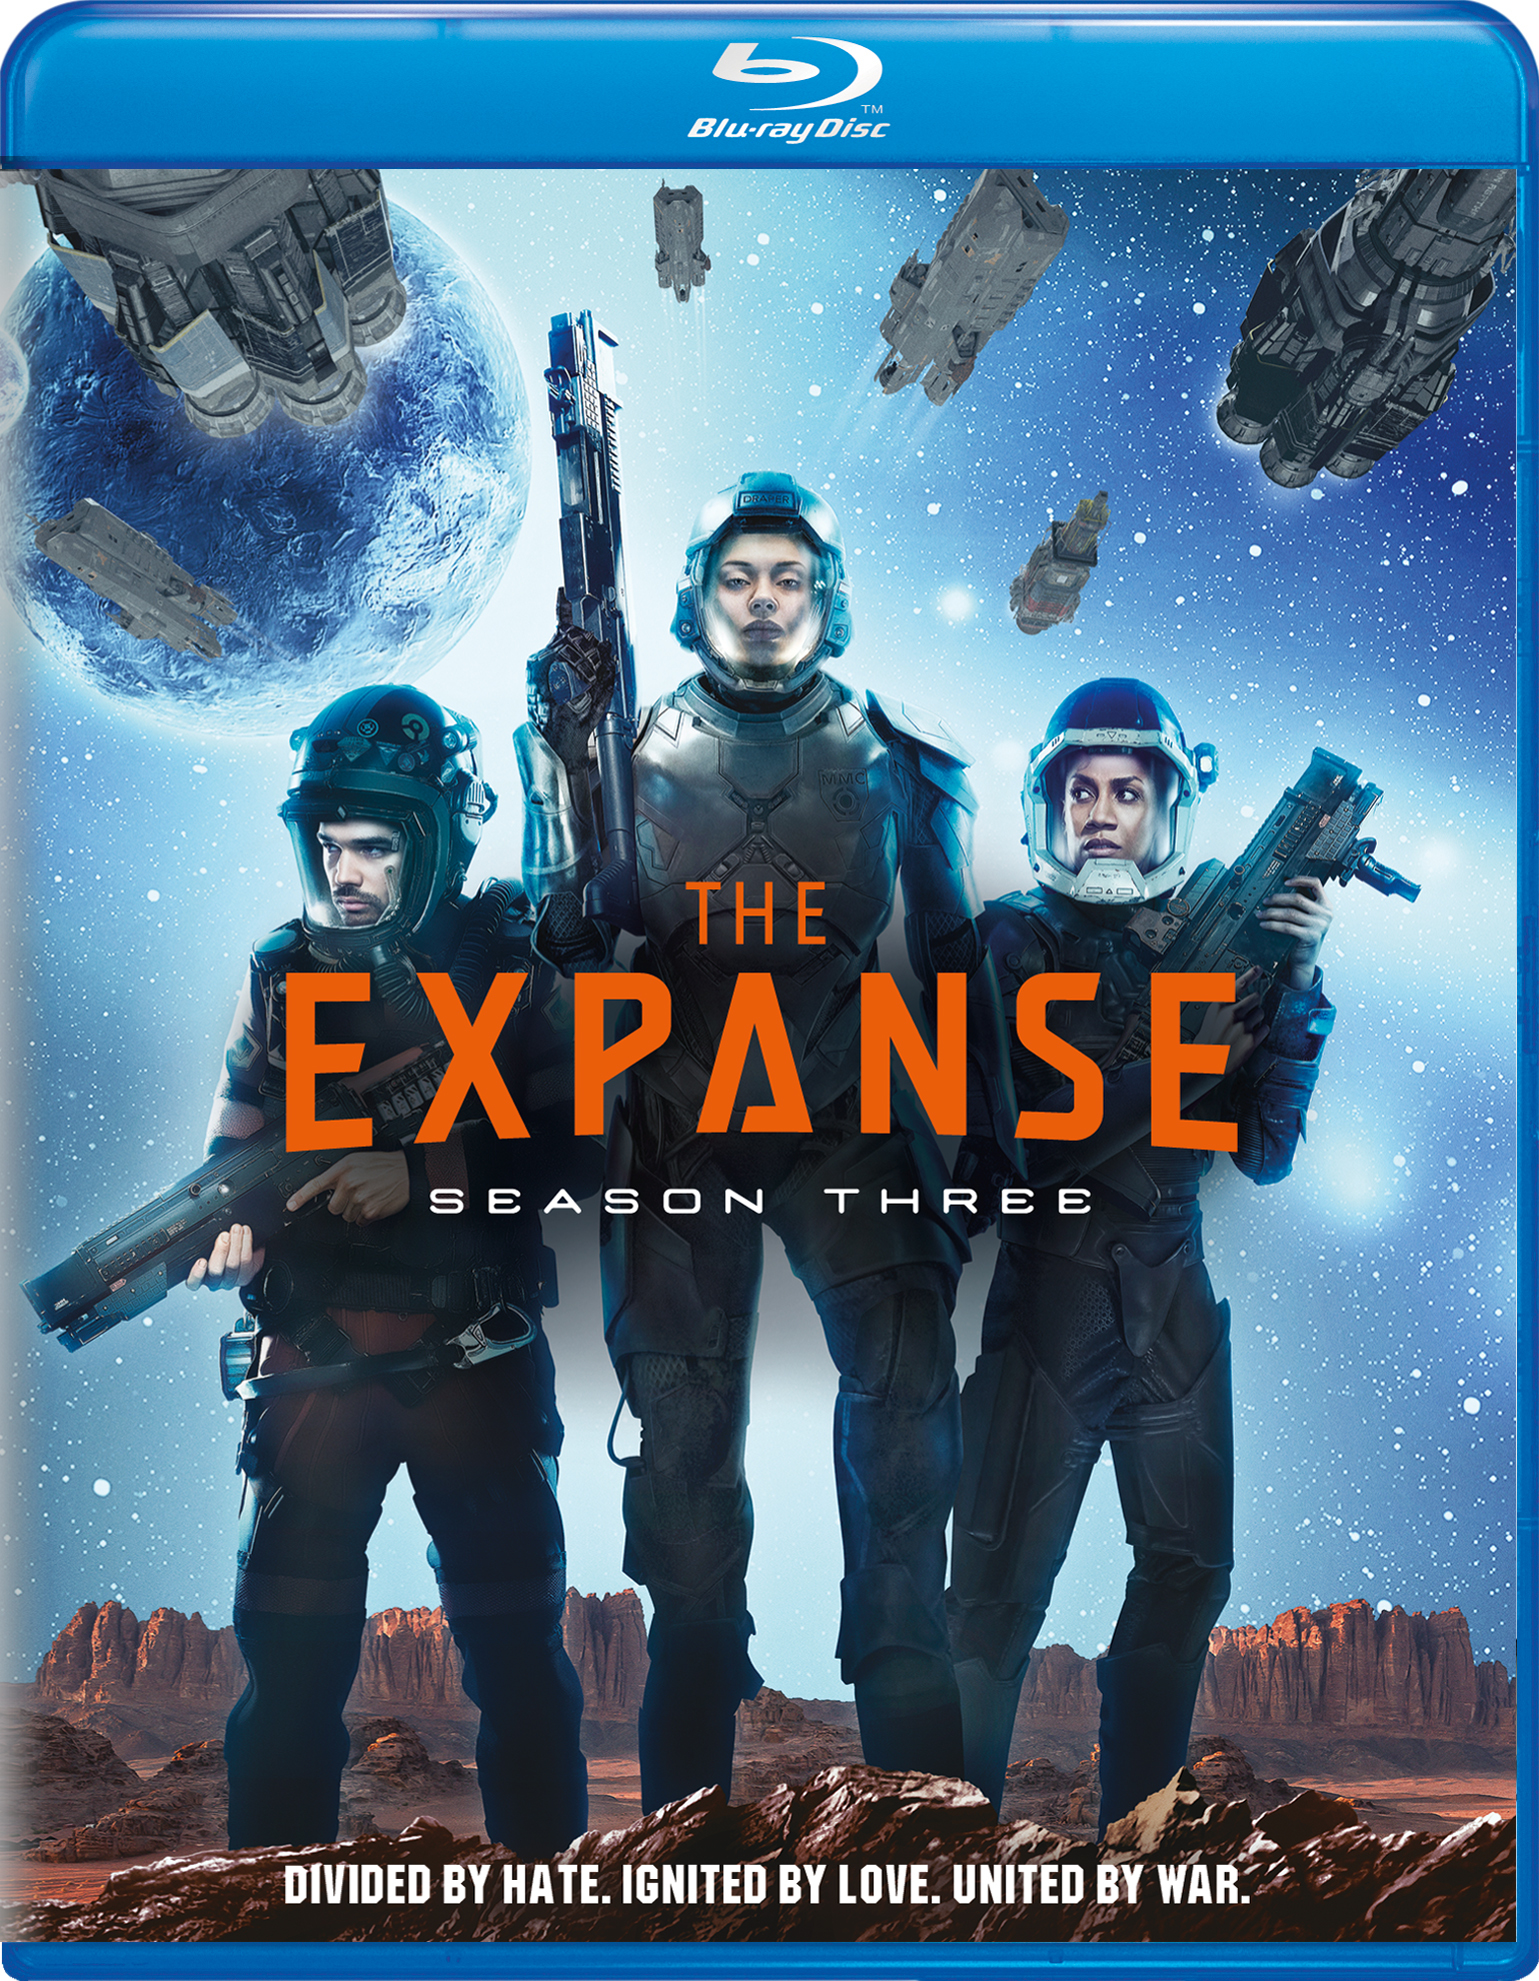 The Expanse: Season Three (TV) (2018) Blu-ray